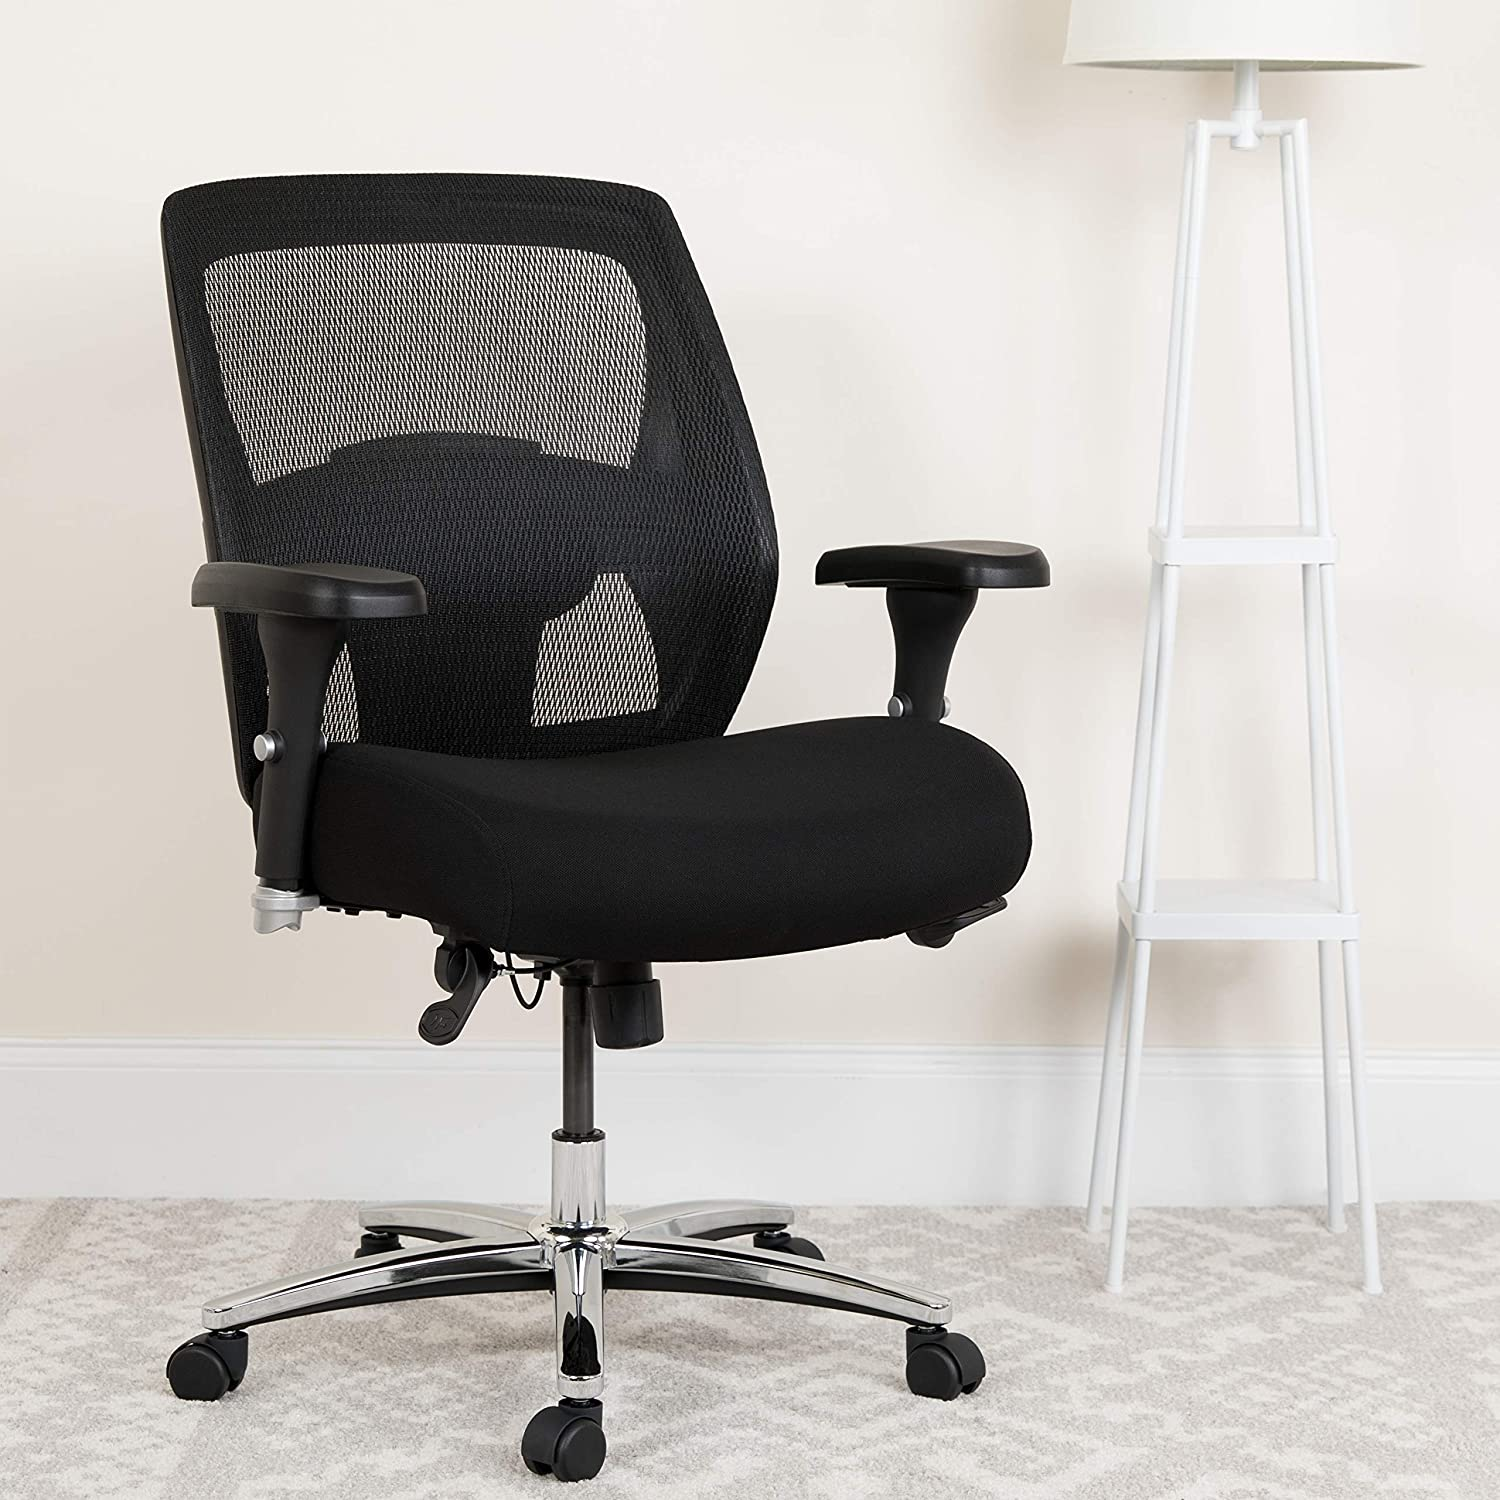 7 Best Office Chairs For Heavy Person From 100 To 1500 Planetwifi